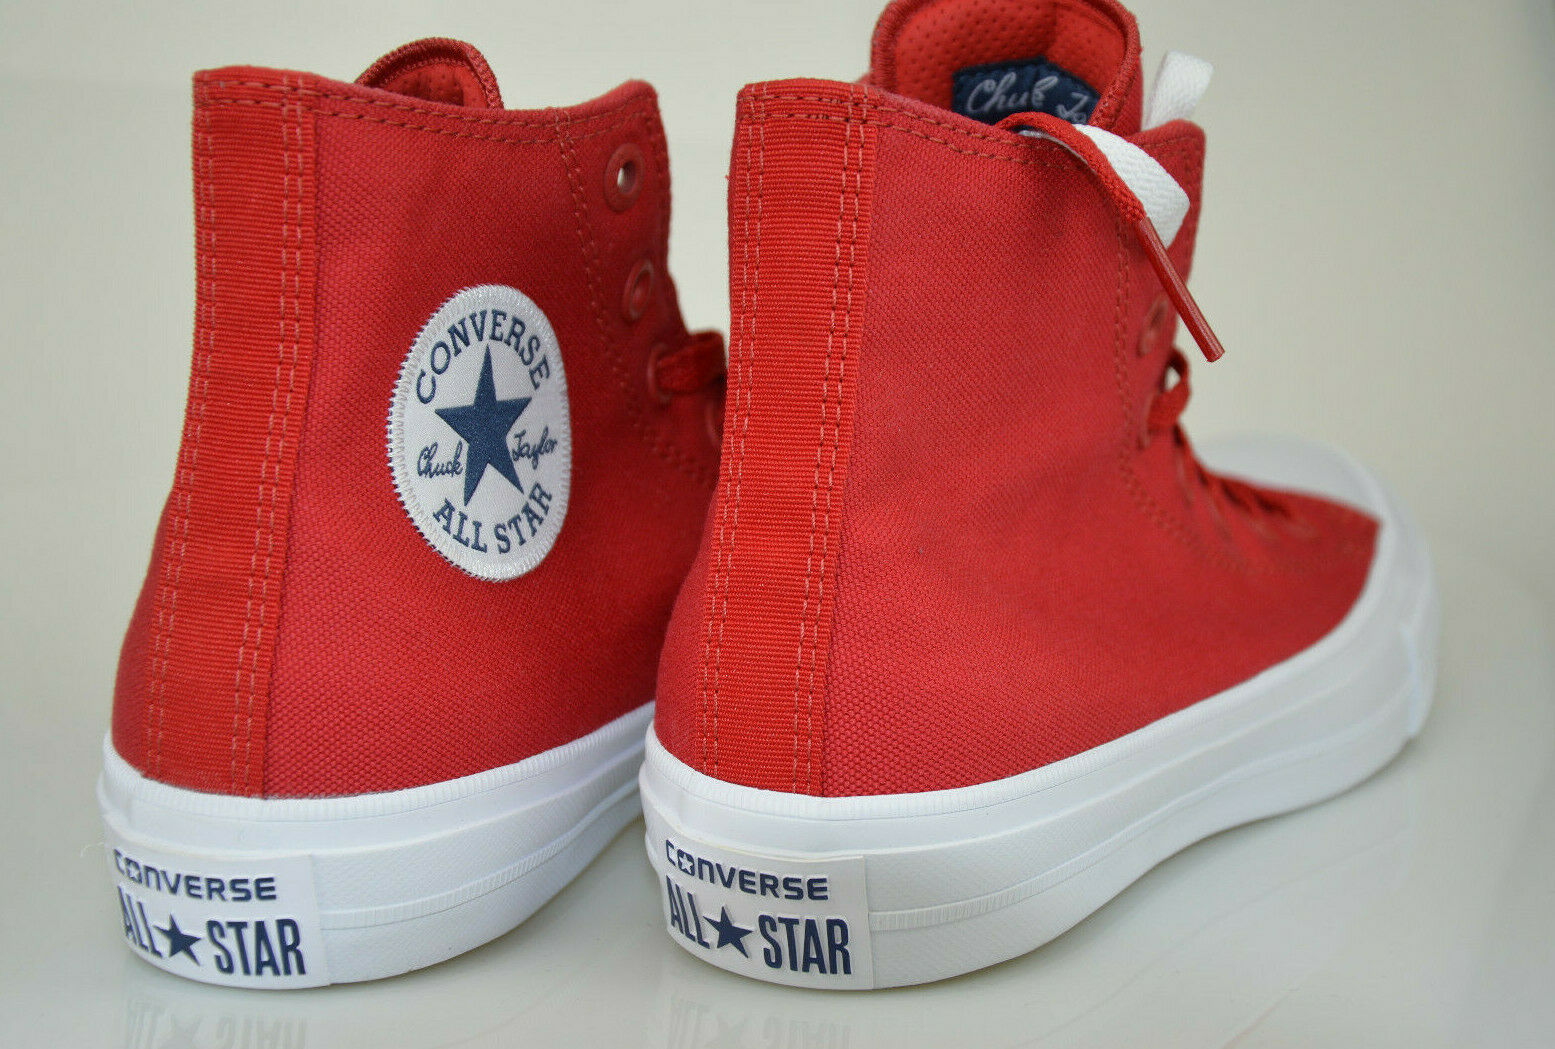 Converse Chuck Chuck Chuck Taylor AS II HI Sneaker High Top Salsa Red   White Unisex 150145C 1185be